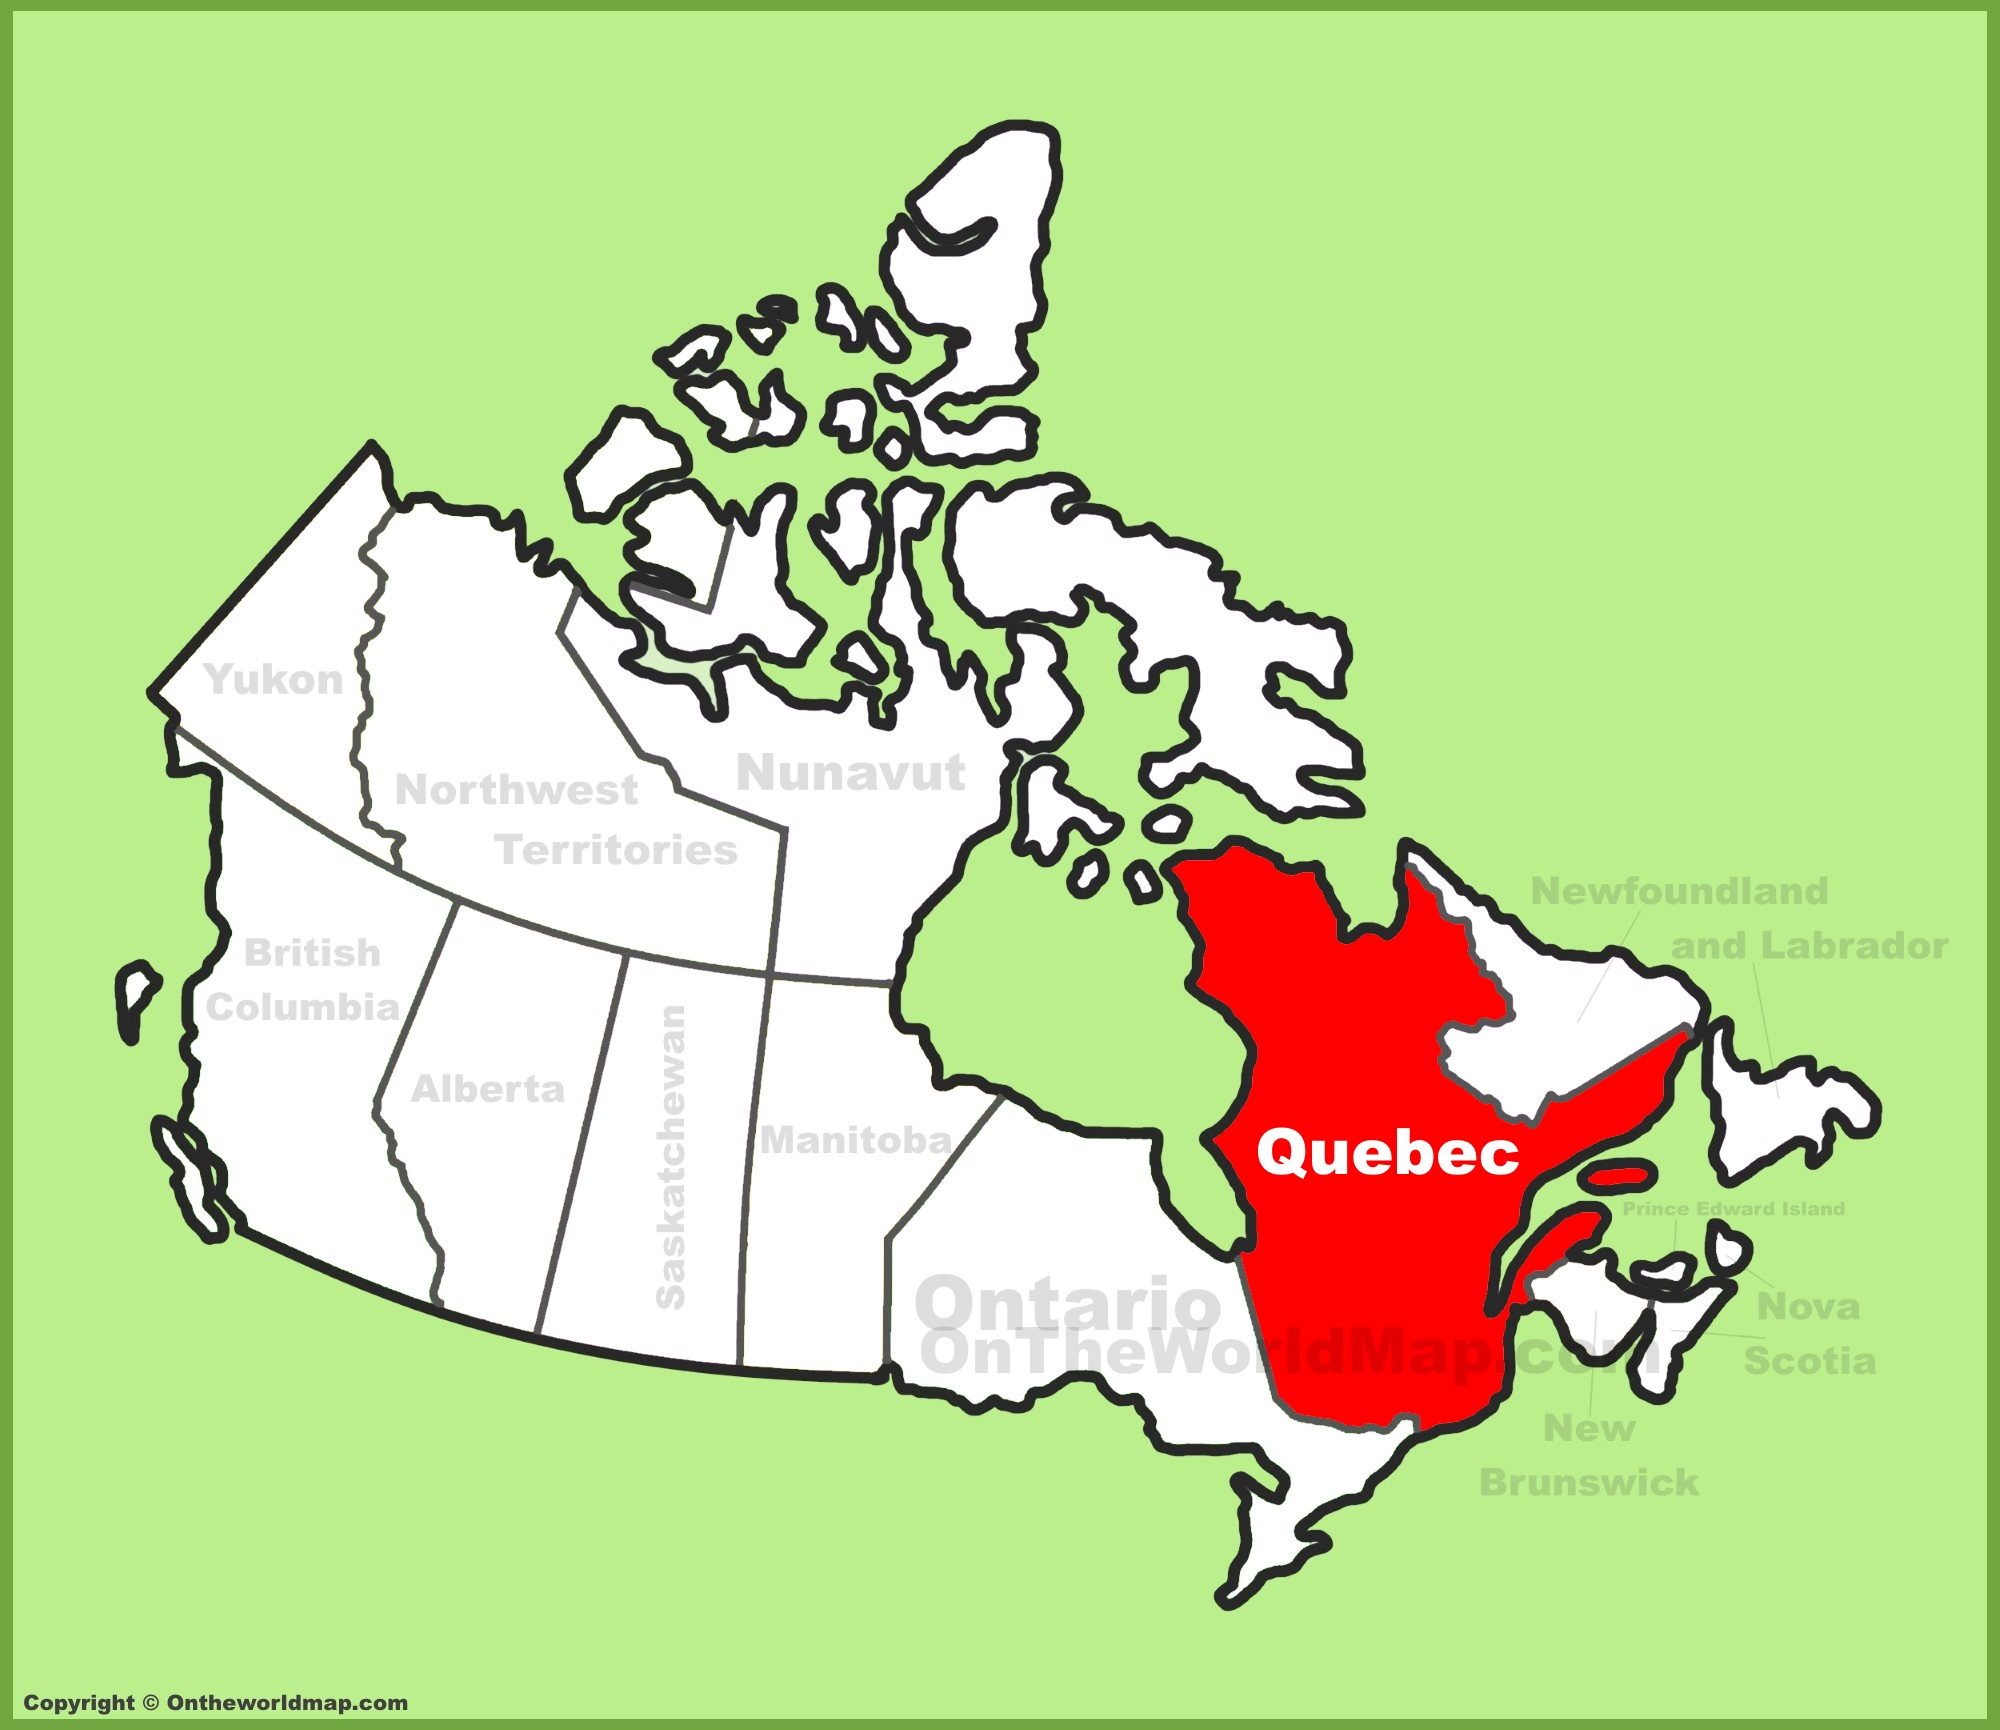 Quebec On Map Of Canada.Quebec Province Location On The Canada Map